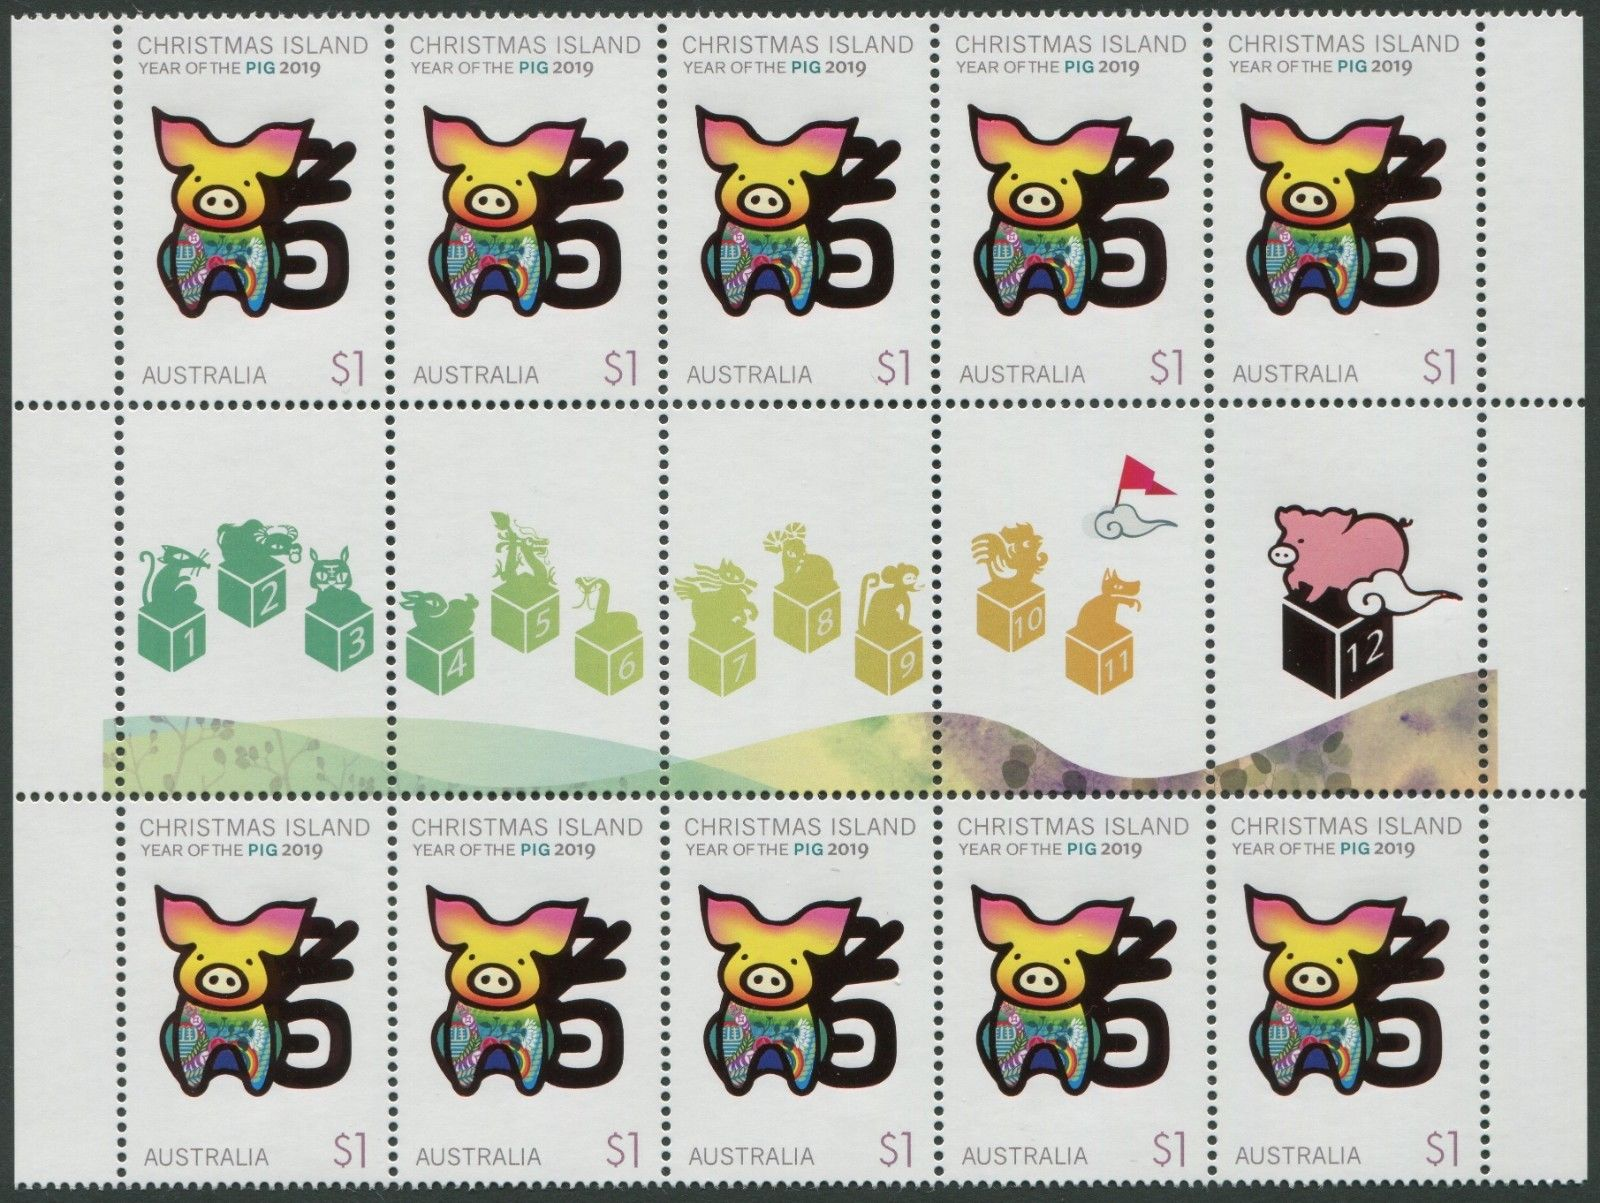 Christmas Island - Year of the Pig (January 8, 2019) sheet of 10